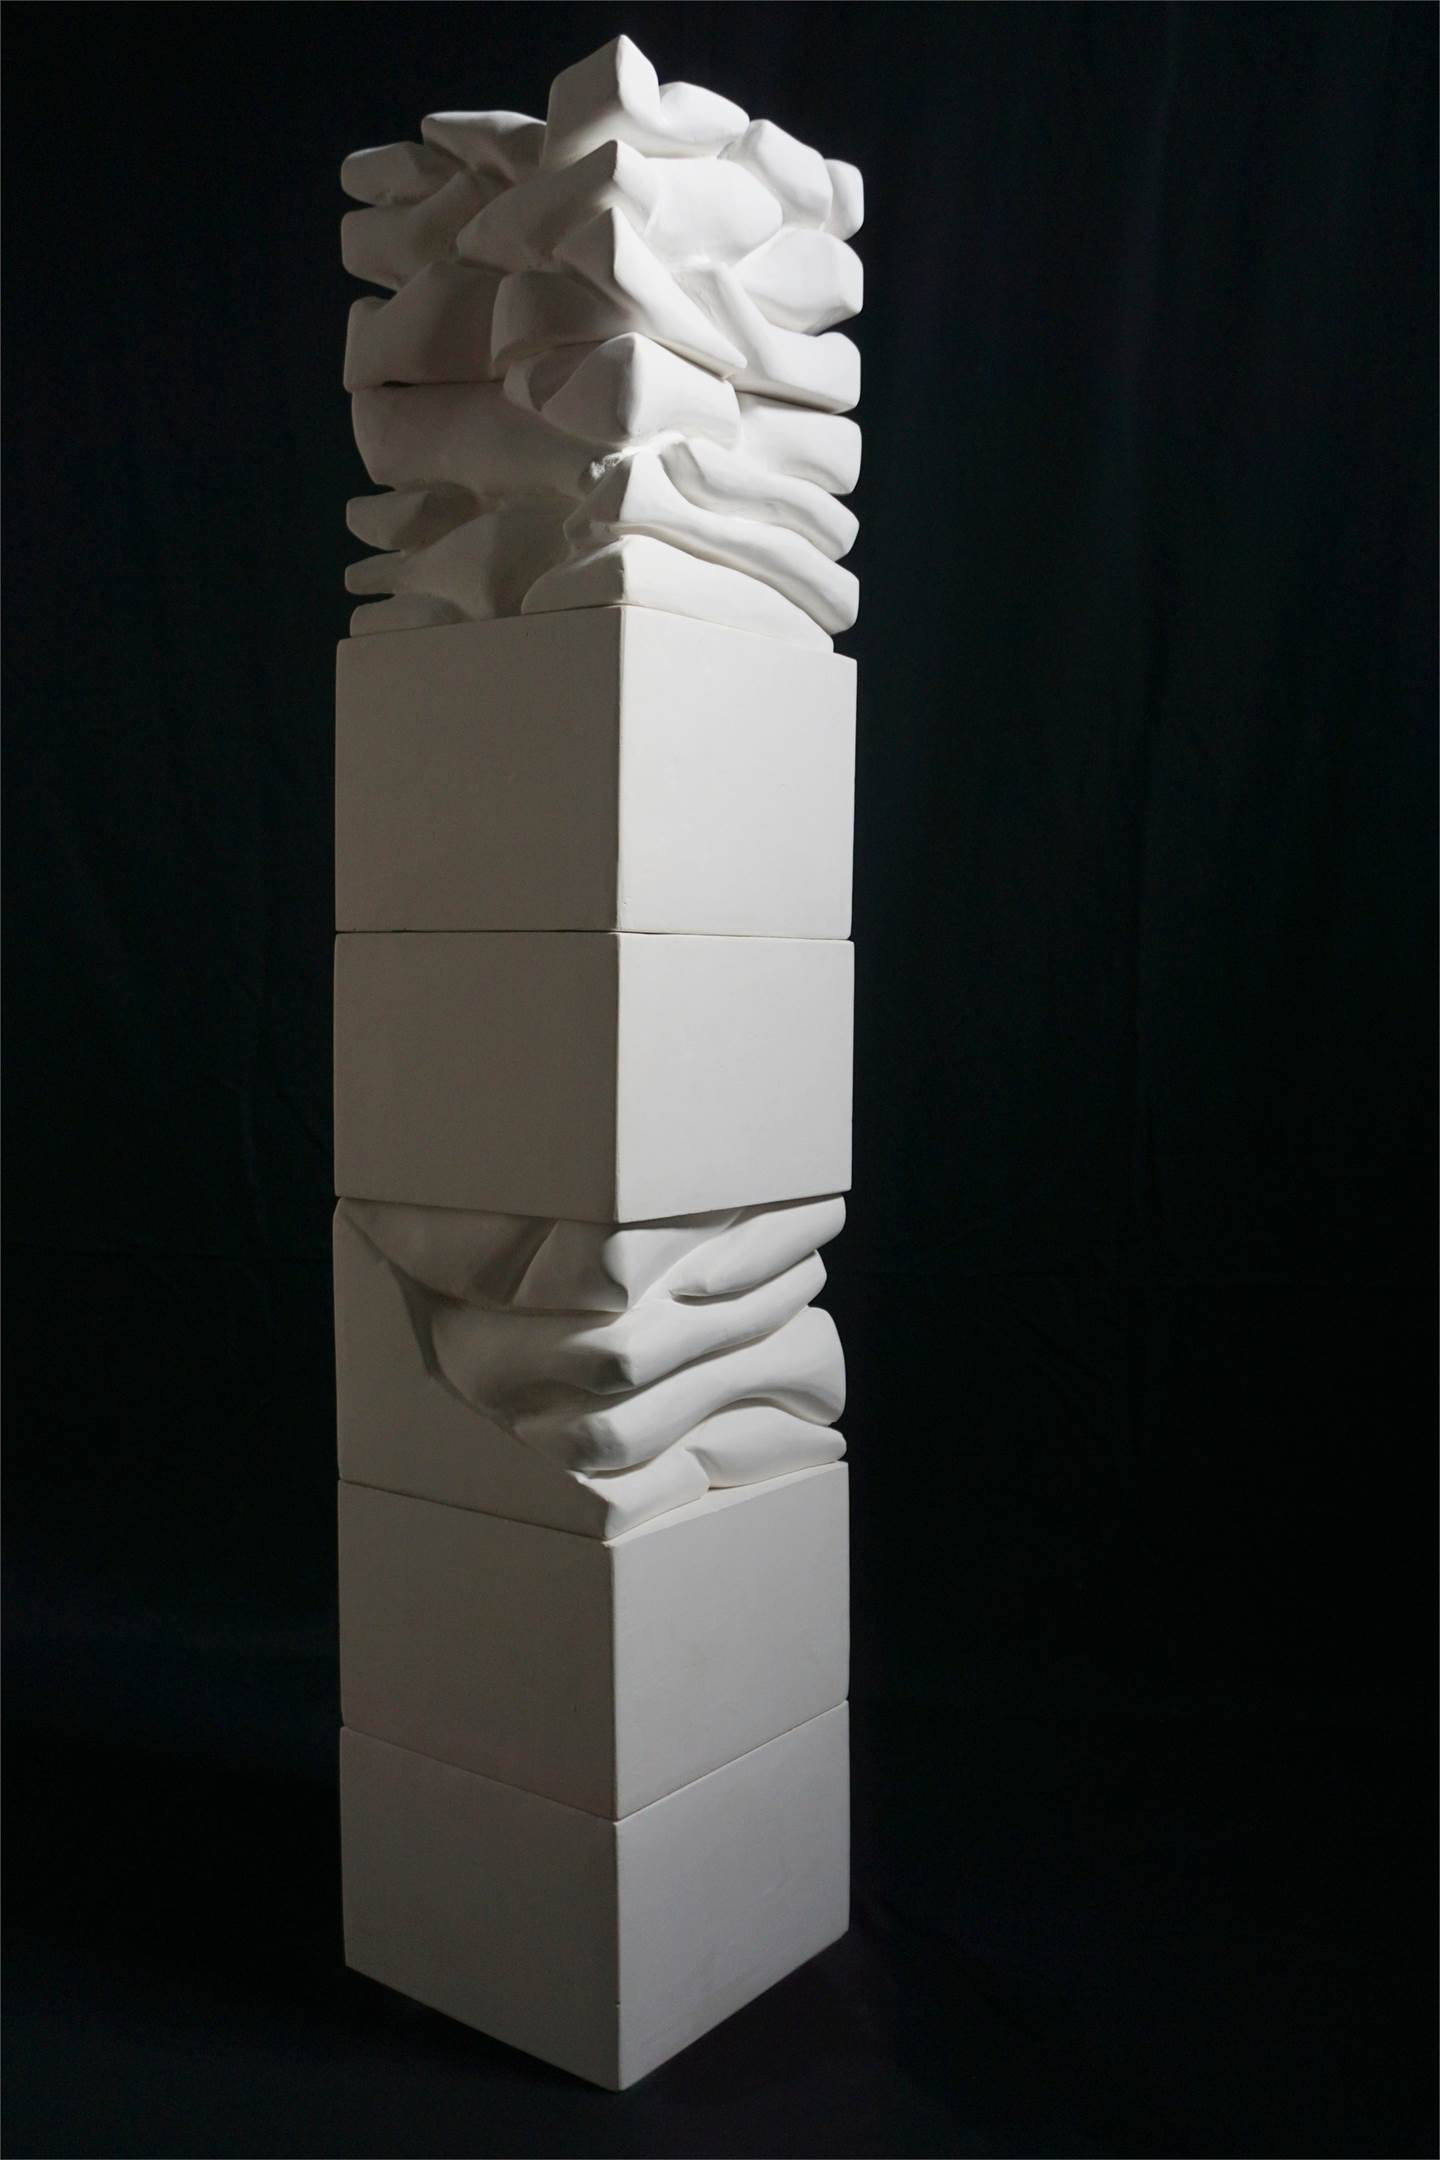 Estratos de Pensamento III, original Abstract Plaster Sculpture by Jéssica Burrinha